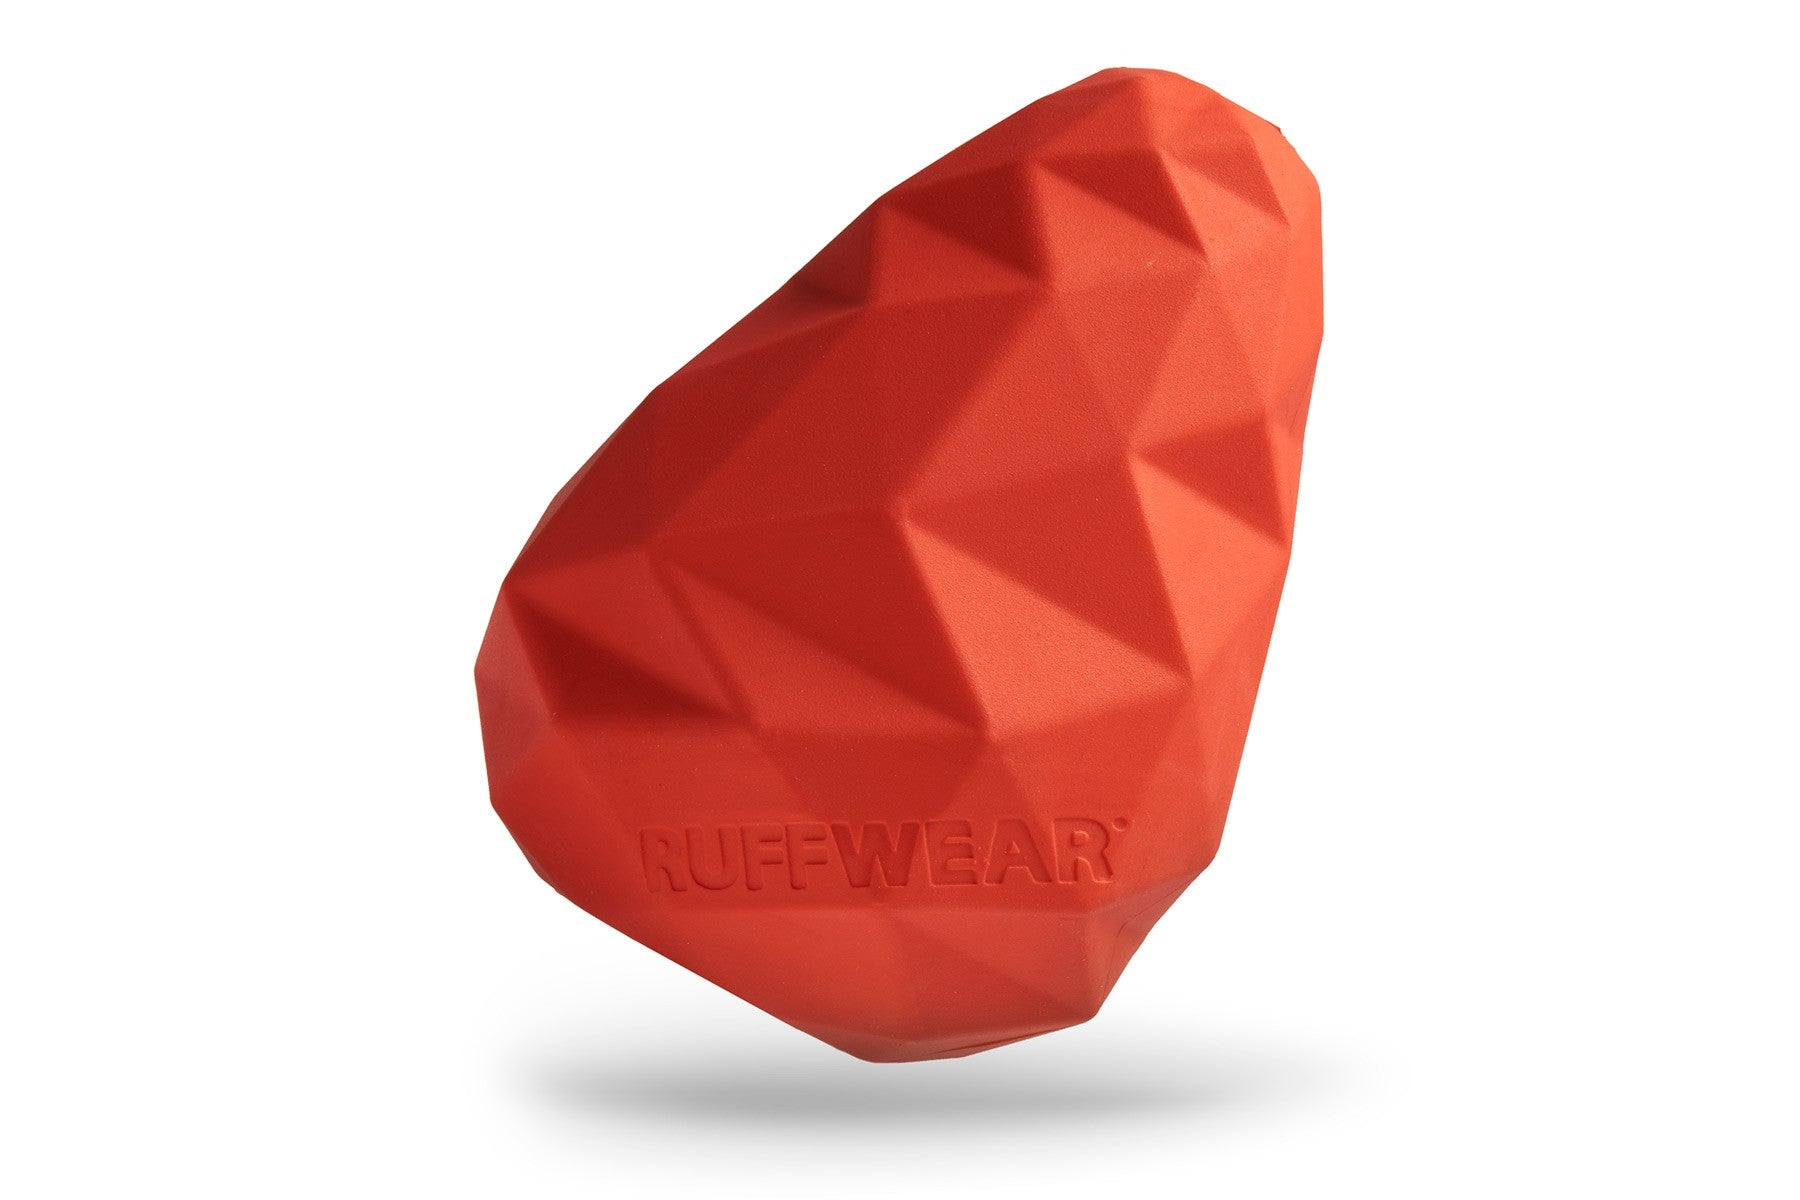 Ruffwear Gnawt A Cone Toy for Dogs in Red Currant